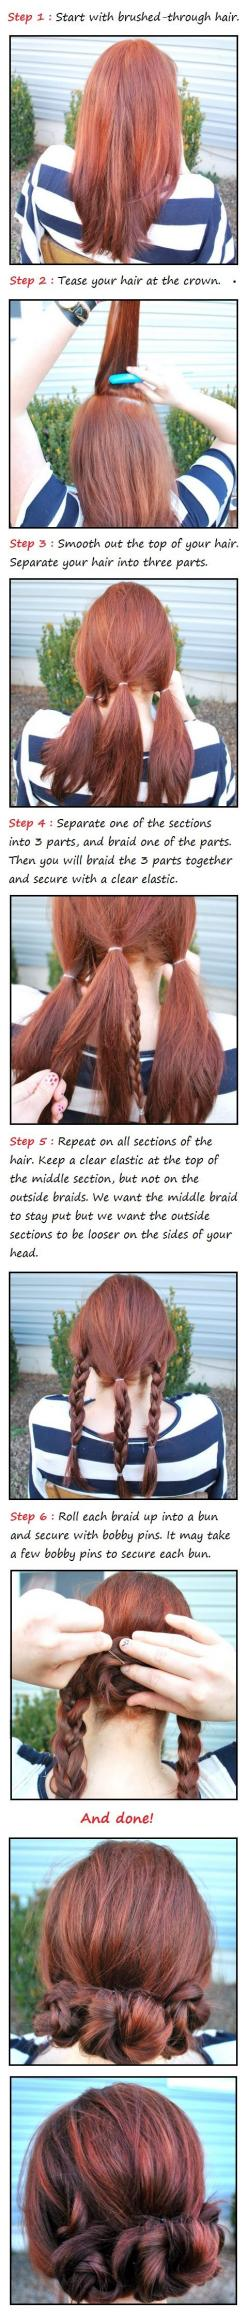 The three Braided Buns Hair Tutorial | Beauty Tutorials - Super cute, but I hope I can pull off the front of my hair looking right.: Hairstyles, Braided Buns, Hair Styles, Hairdos, Braid Buns, Hair Tutorial, Updos, Hair Do